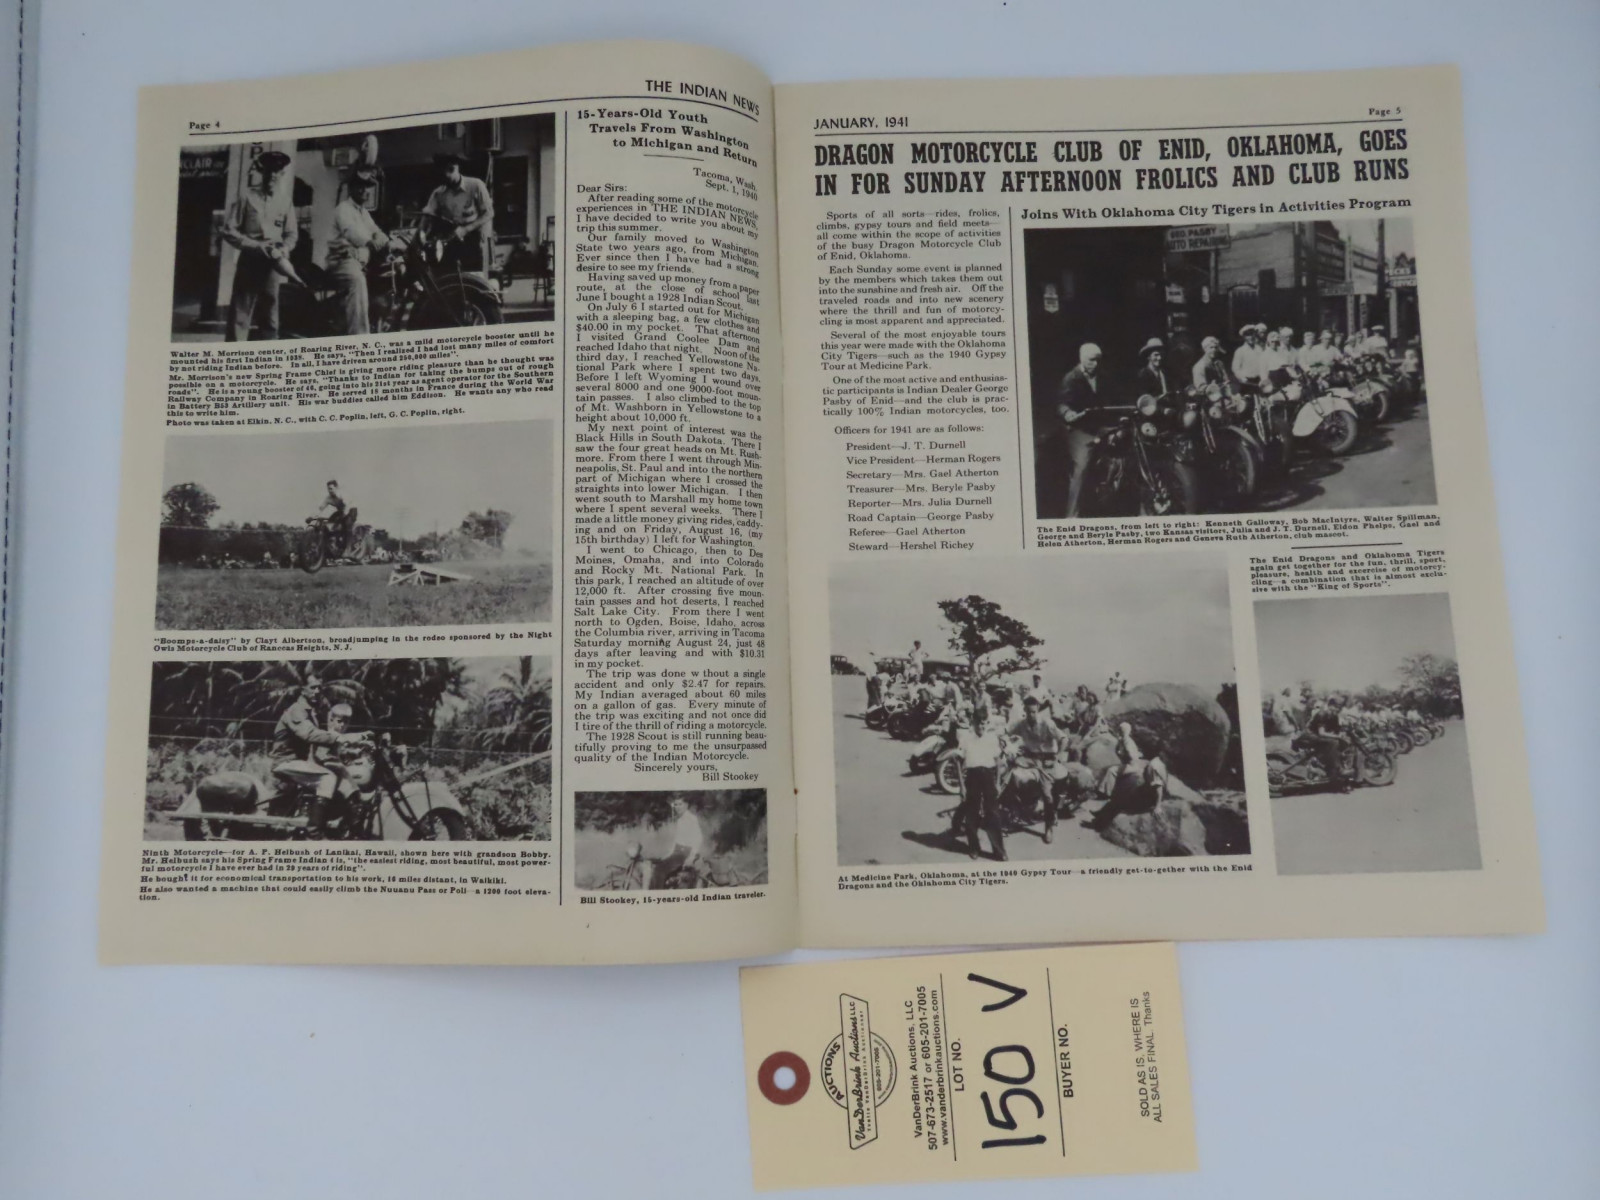 The Indian News - January 1941 - Image 2